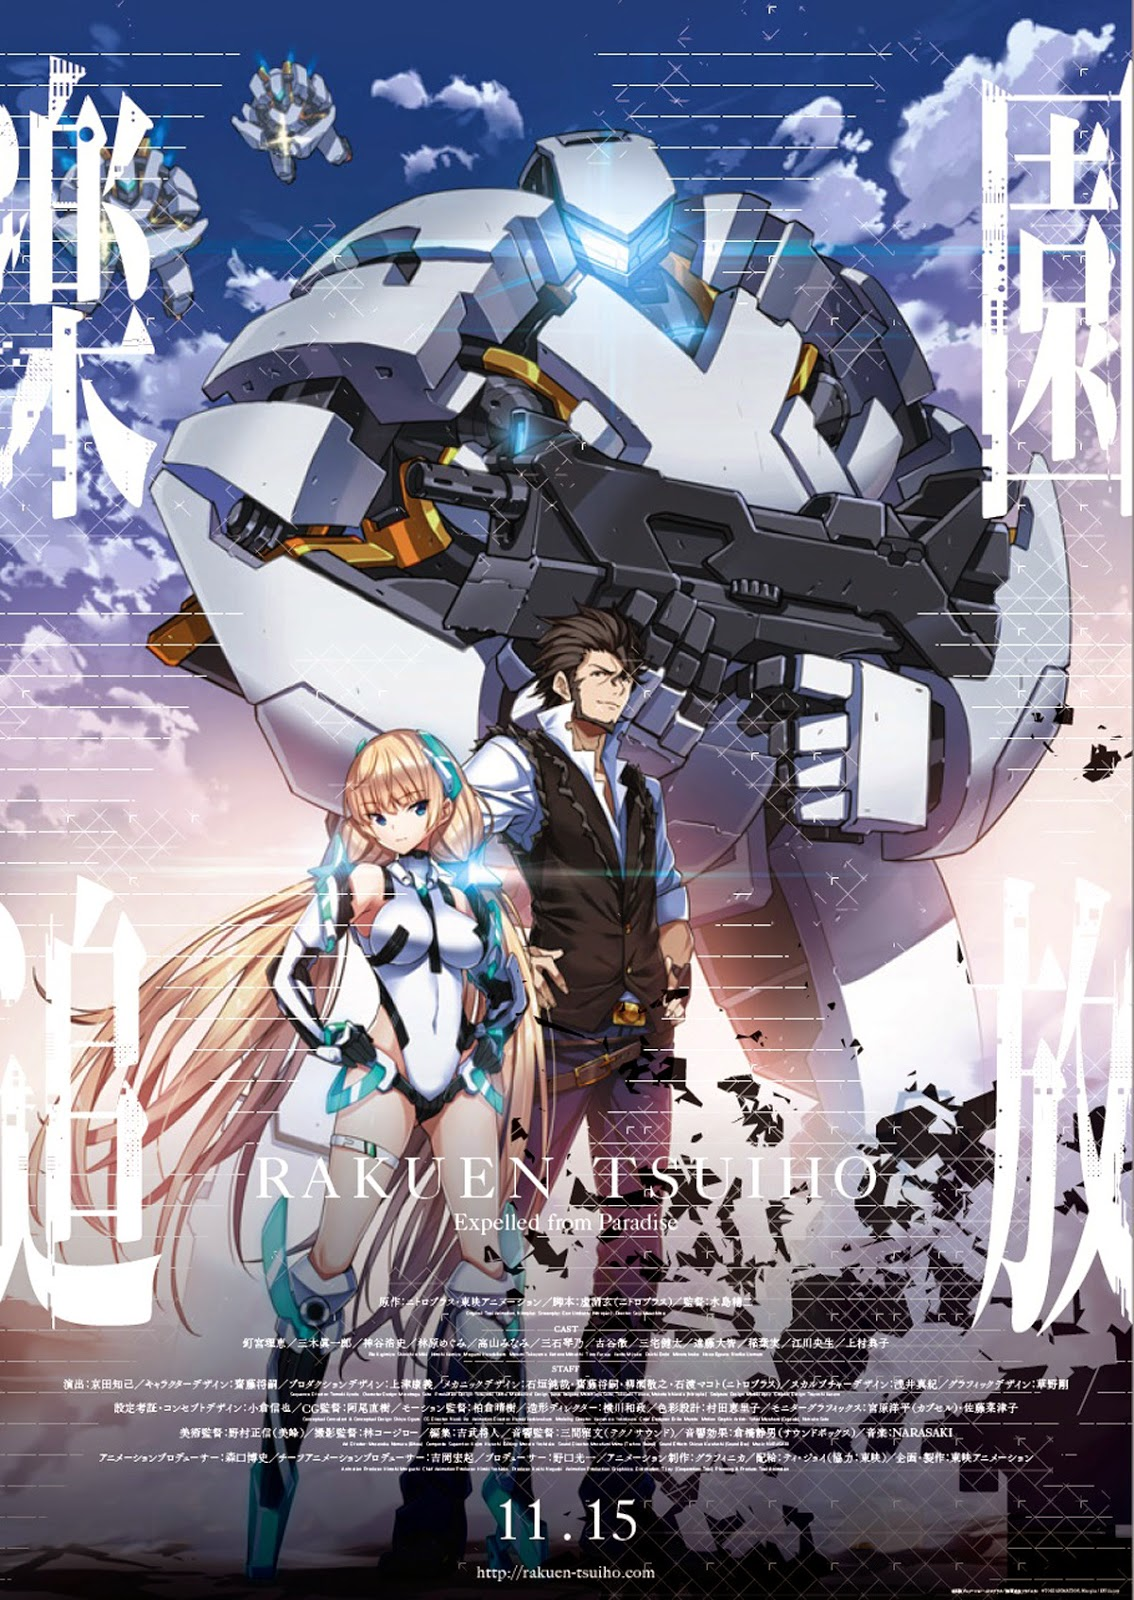 Rakuen Tsuihou: Expelled From Paradise (The Movie)